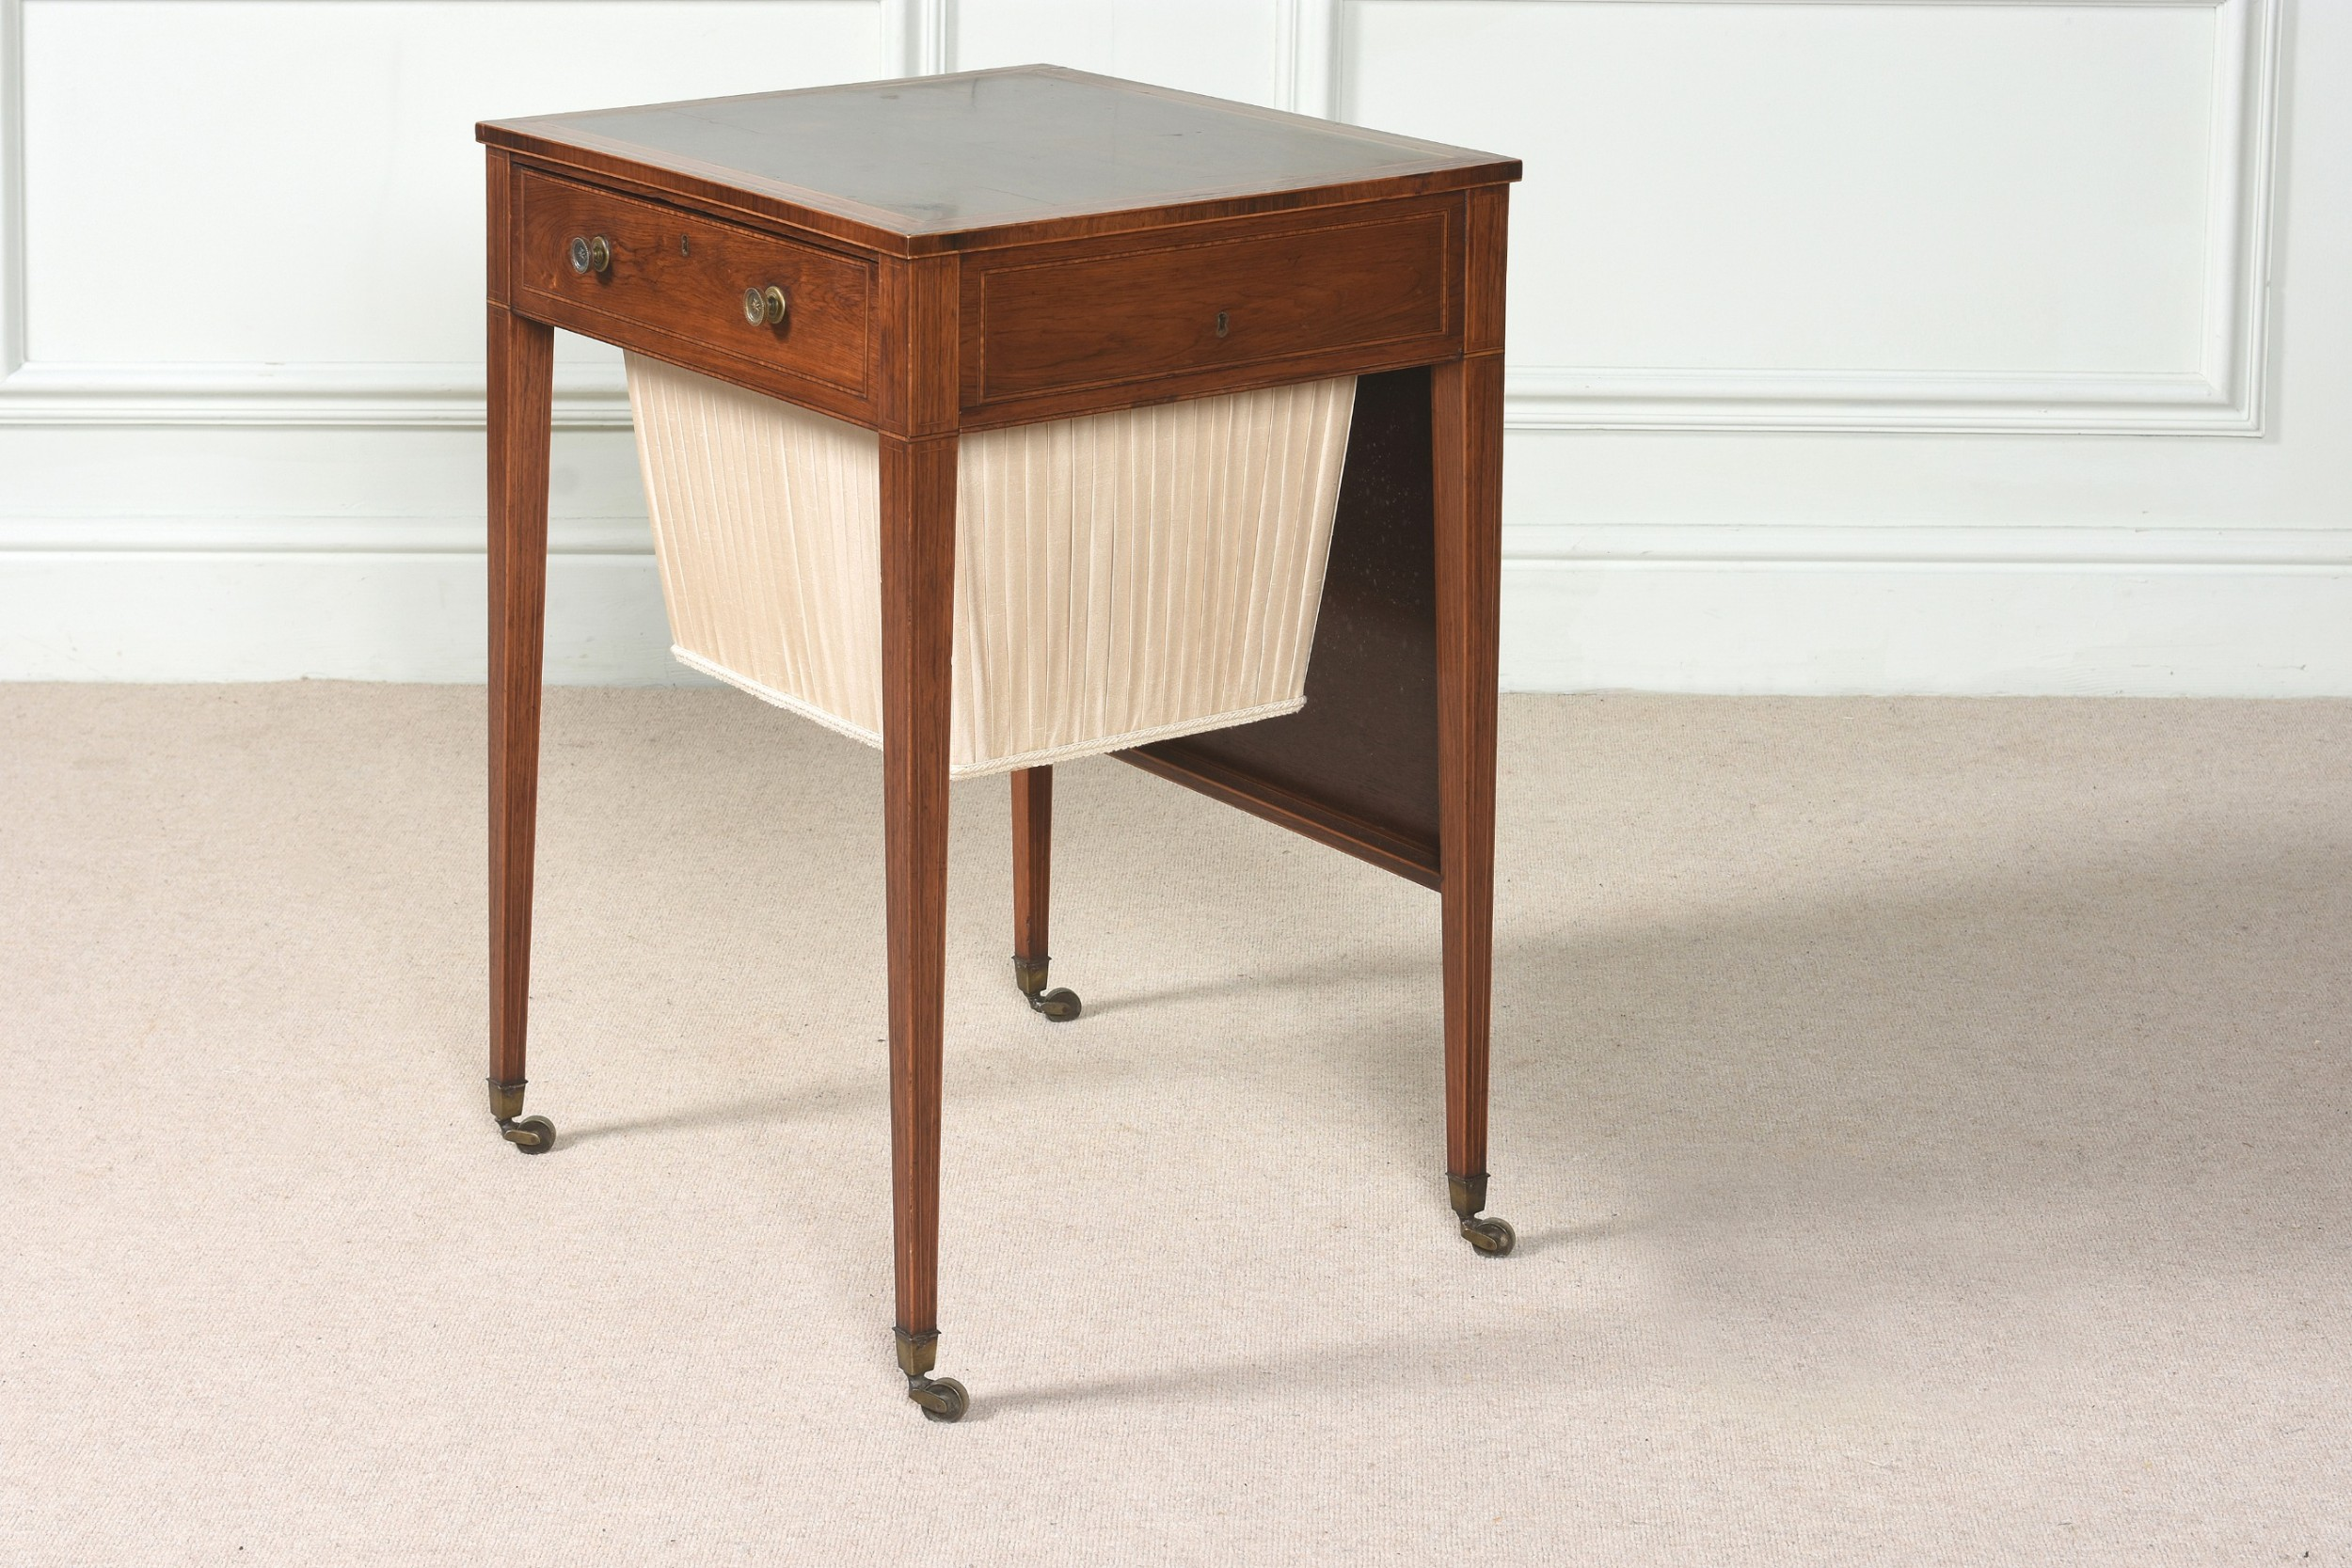 18th century sheraton rosewood sewing table in excellent condition c1785